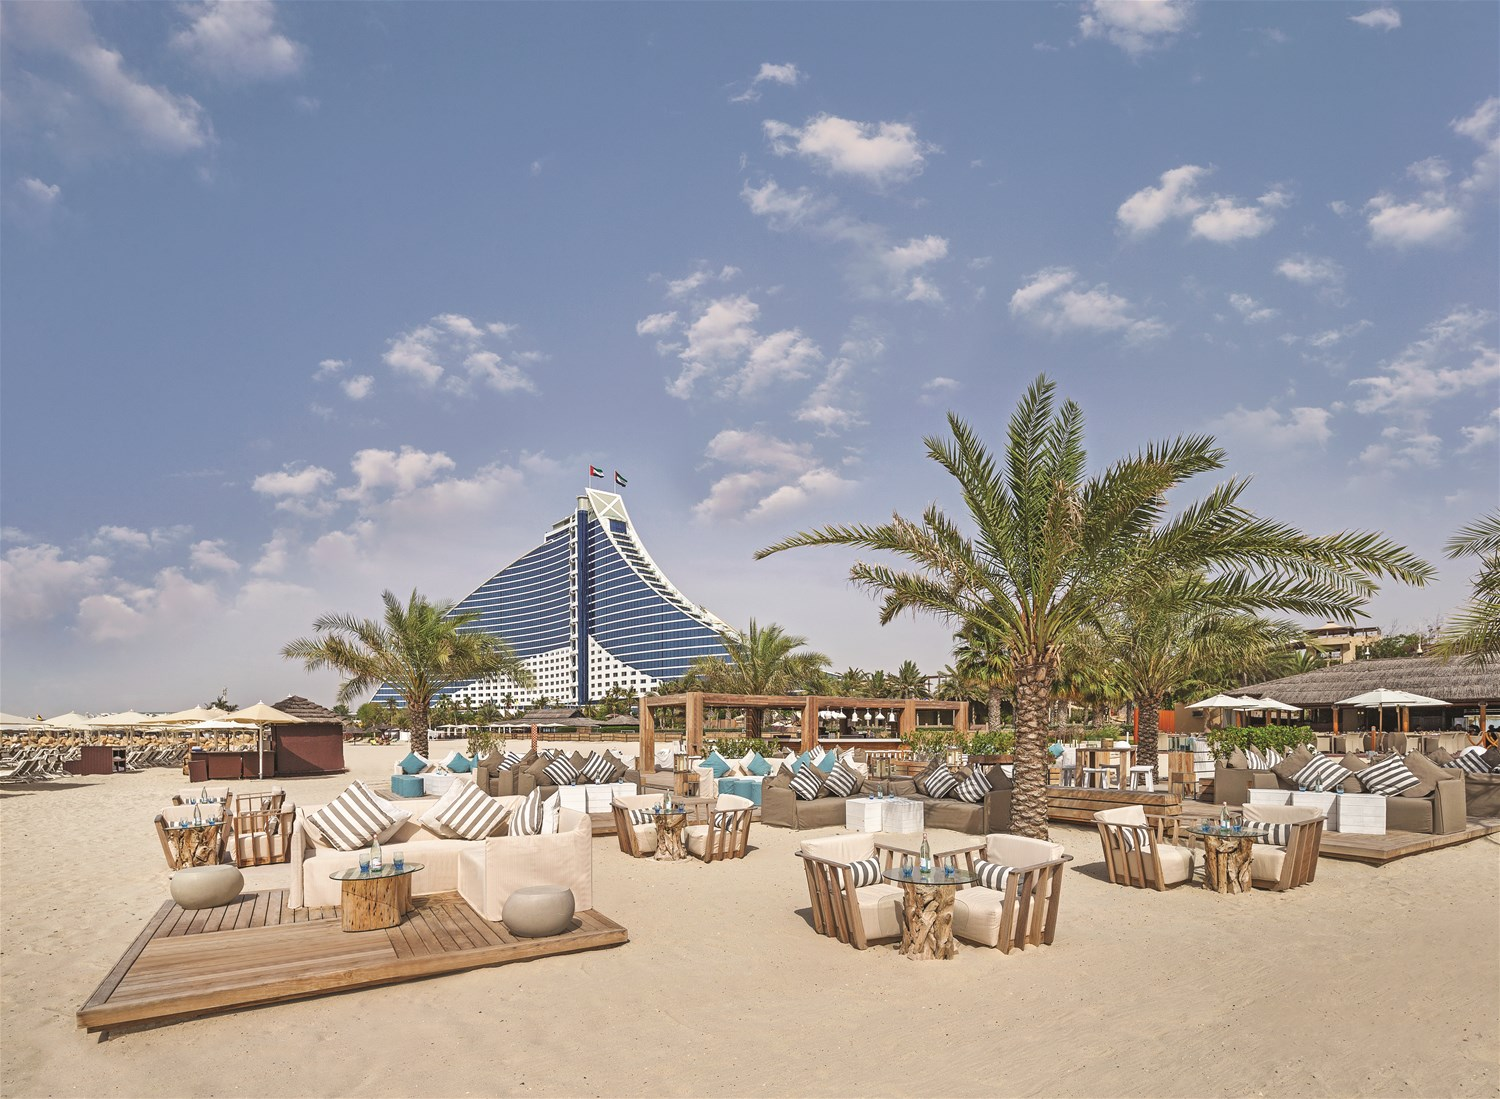 Jumeirah beach hotel dubai uae trailfinders the travel for Dubai hotels near beach